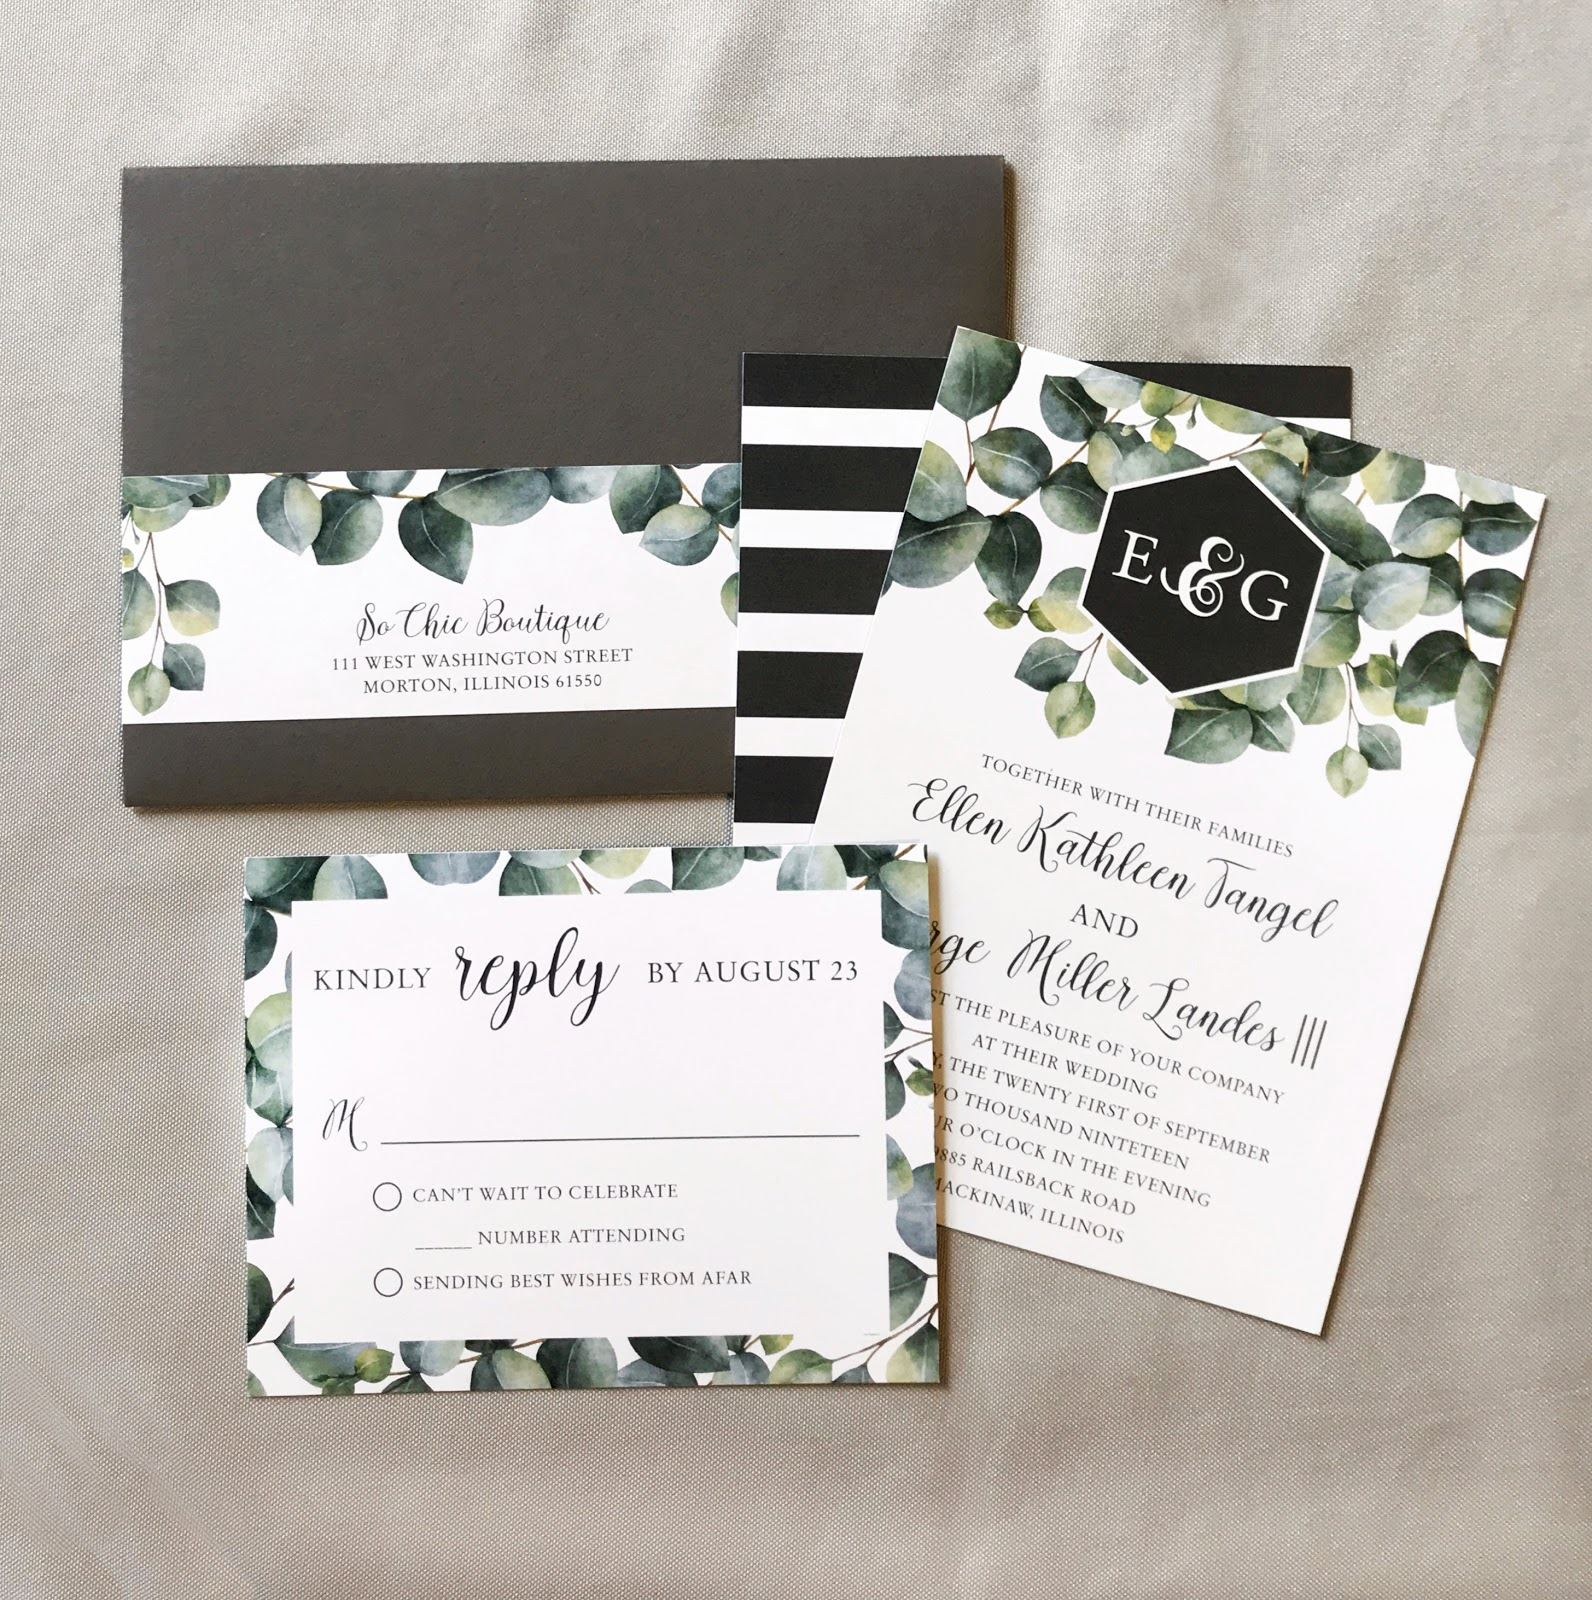 #adoretip | Wedding Invitations - The Do's + Don'ts. Mobile Image